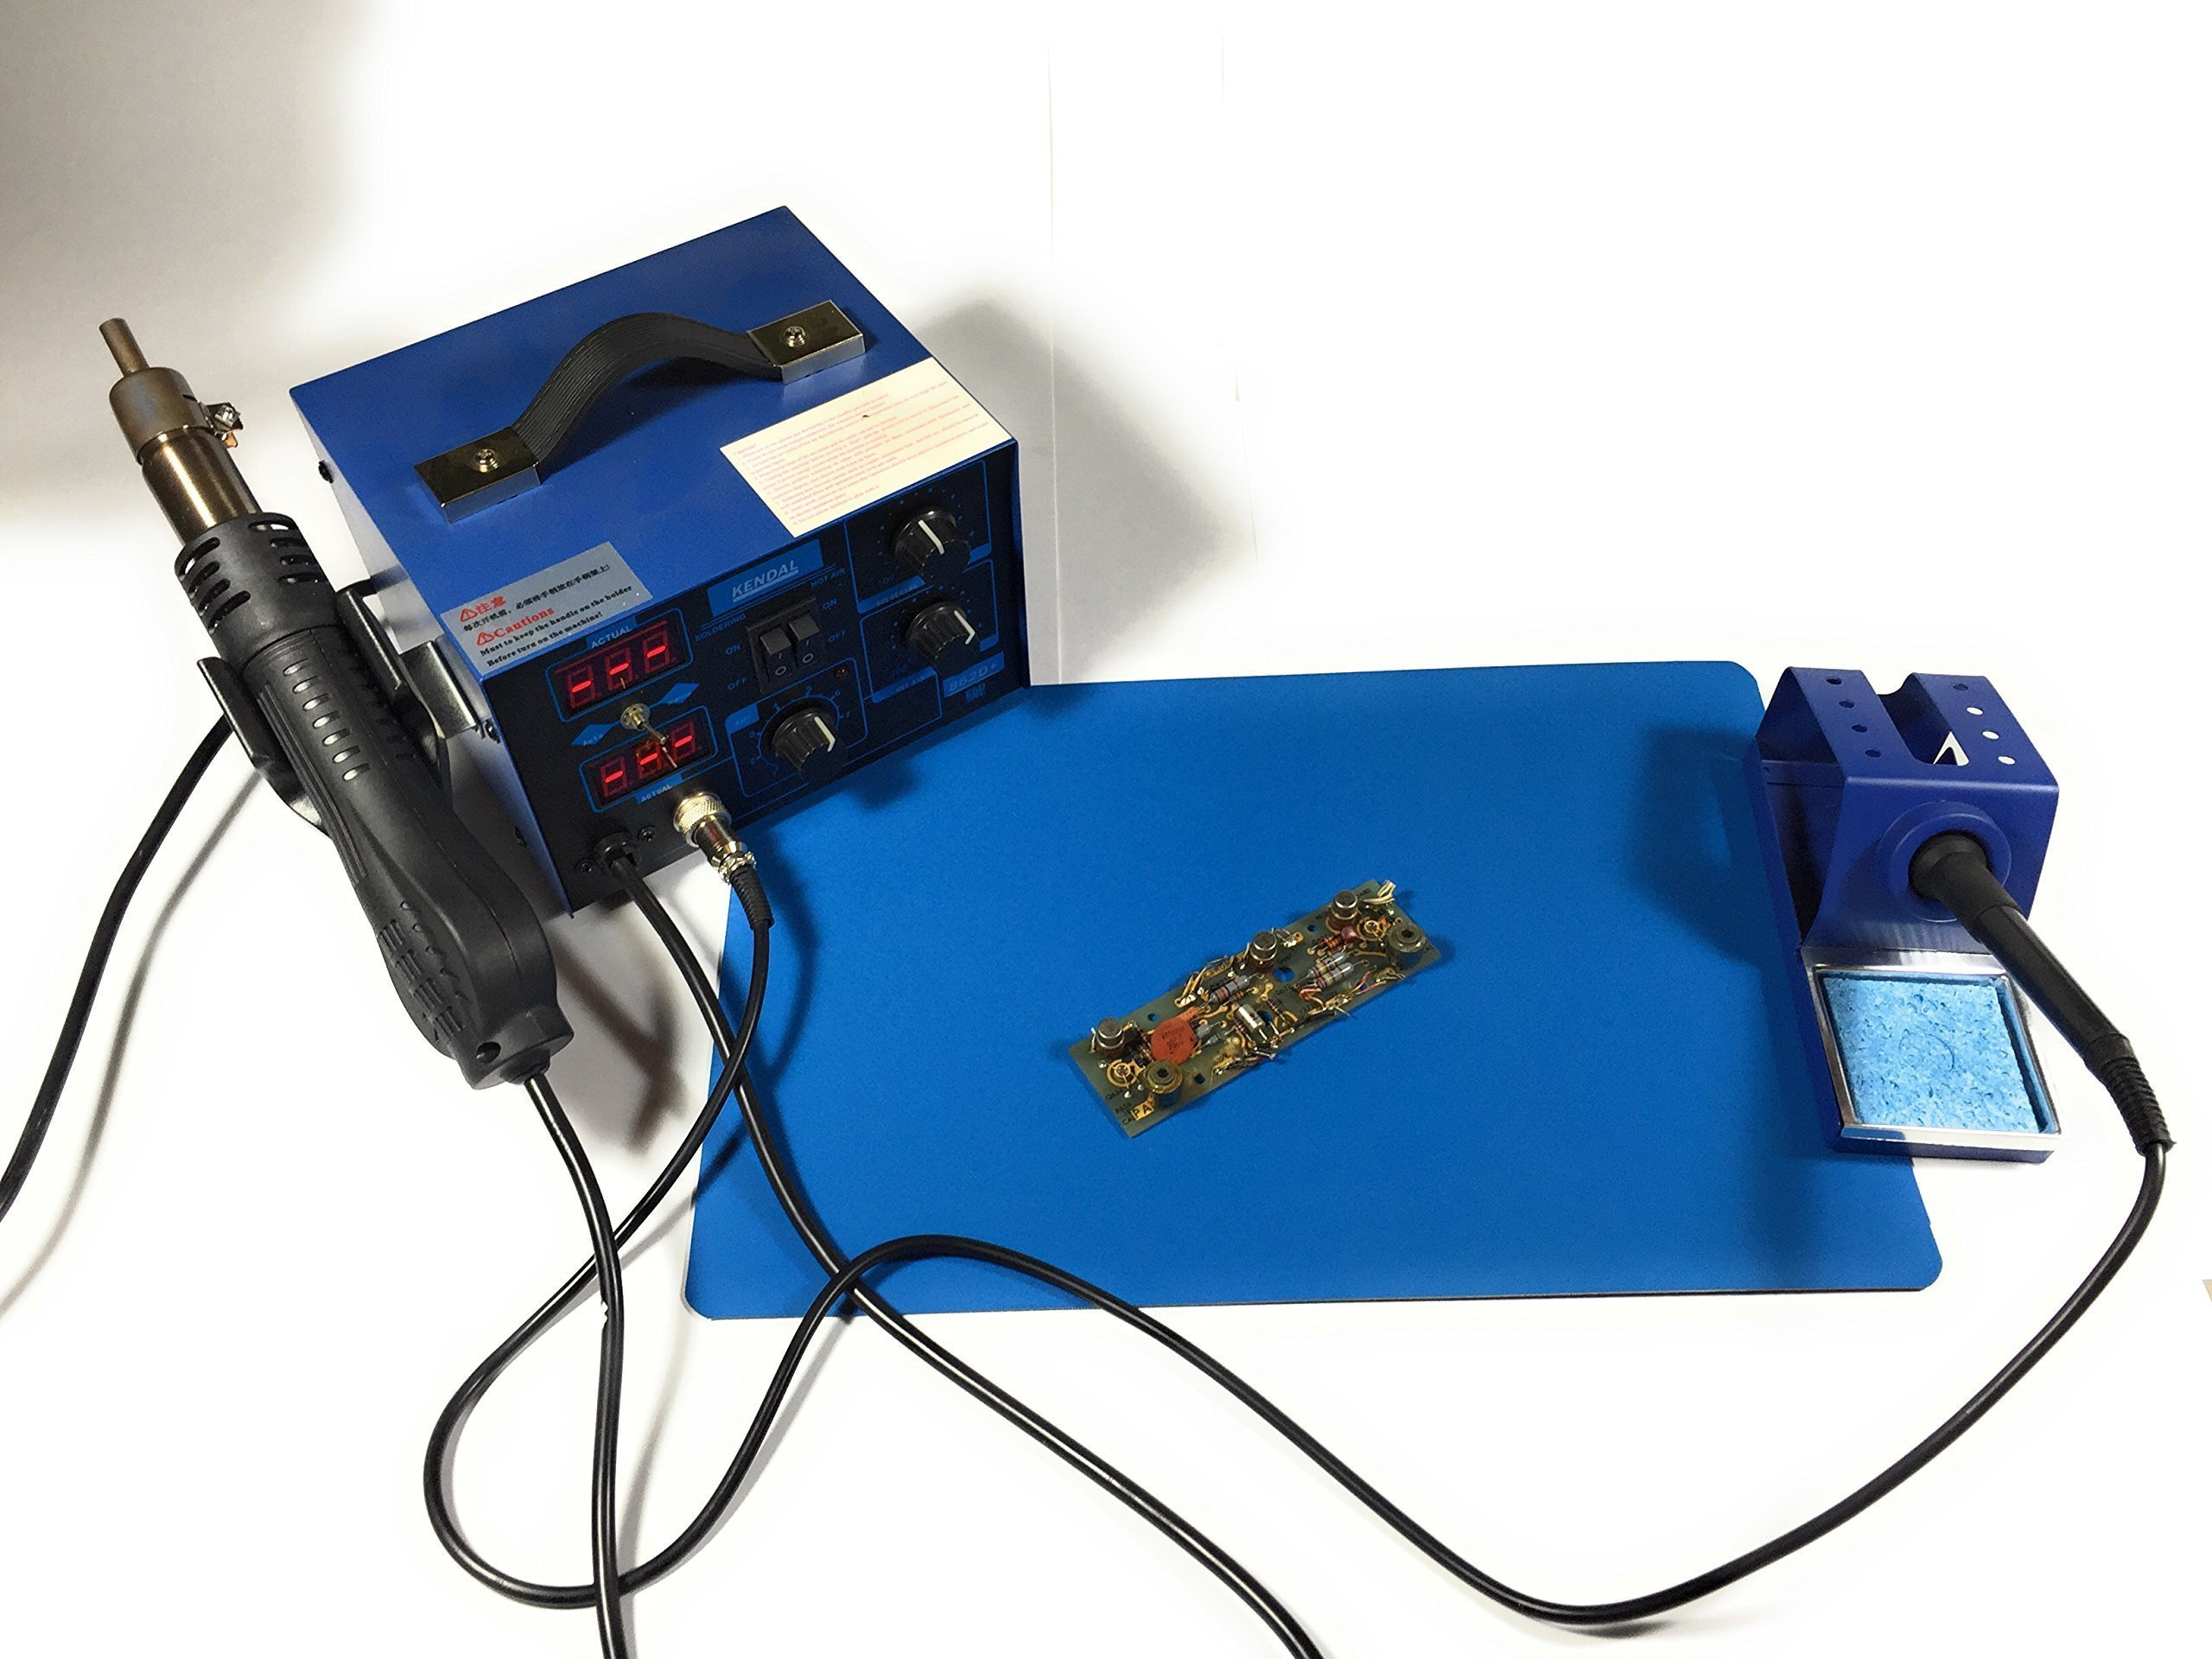 Anti Static Heat Resistant Soldering / Hot Air Rework Mat or Pad, Multi Use, Upcycled, $5.00 REBATE, USA Made, Over 50 Sold